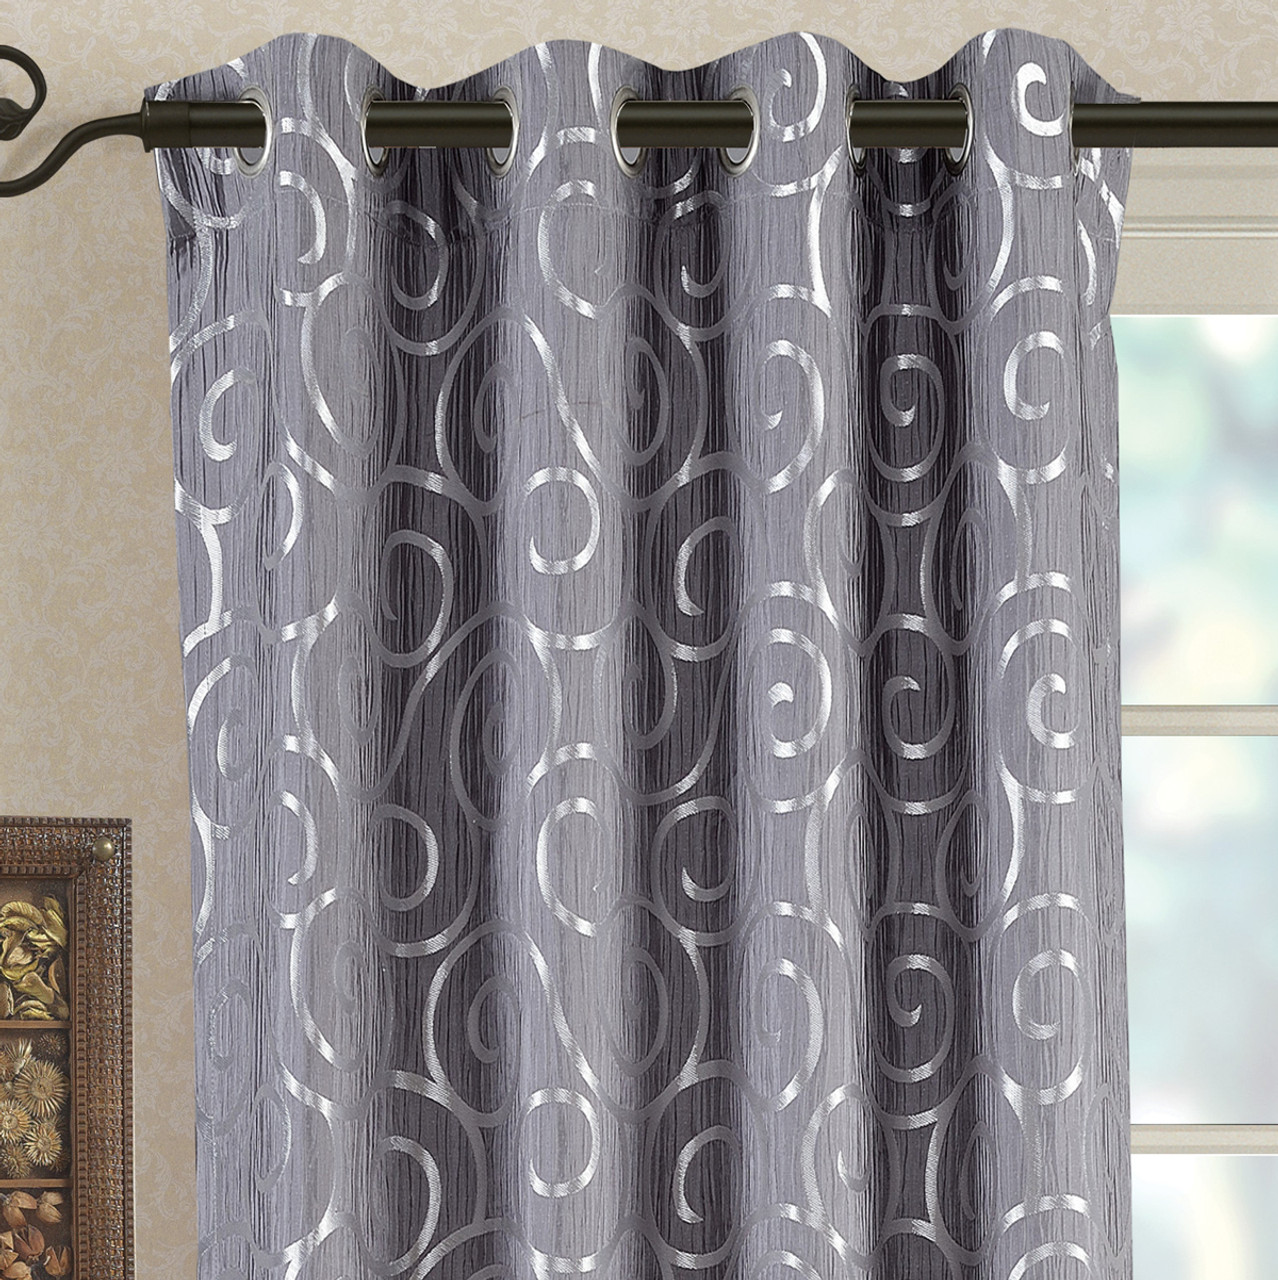 drapes luna woven wide bella panels patio grommet w l panel p gray light x maya door curtain extra in blackout curtains